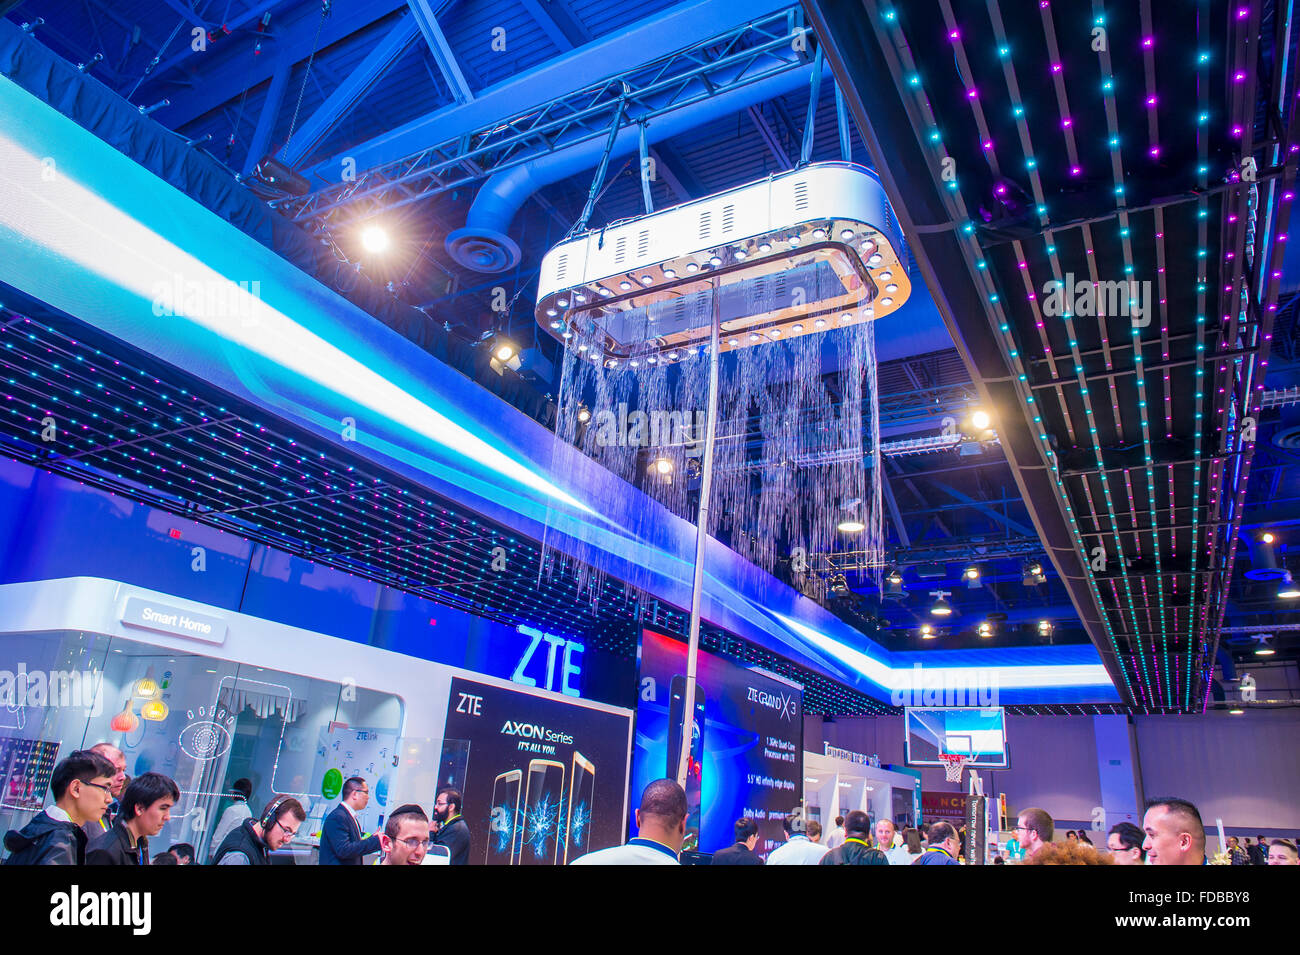 the zte booth at the ces show held in las vegas stock photo royalty free image 94293228 alamy. Black Bedroom Furniture Sets. Home Design Ideas